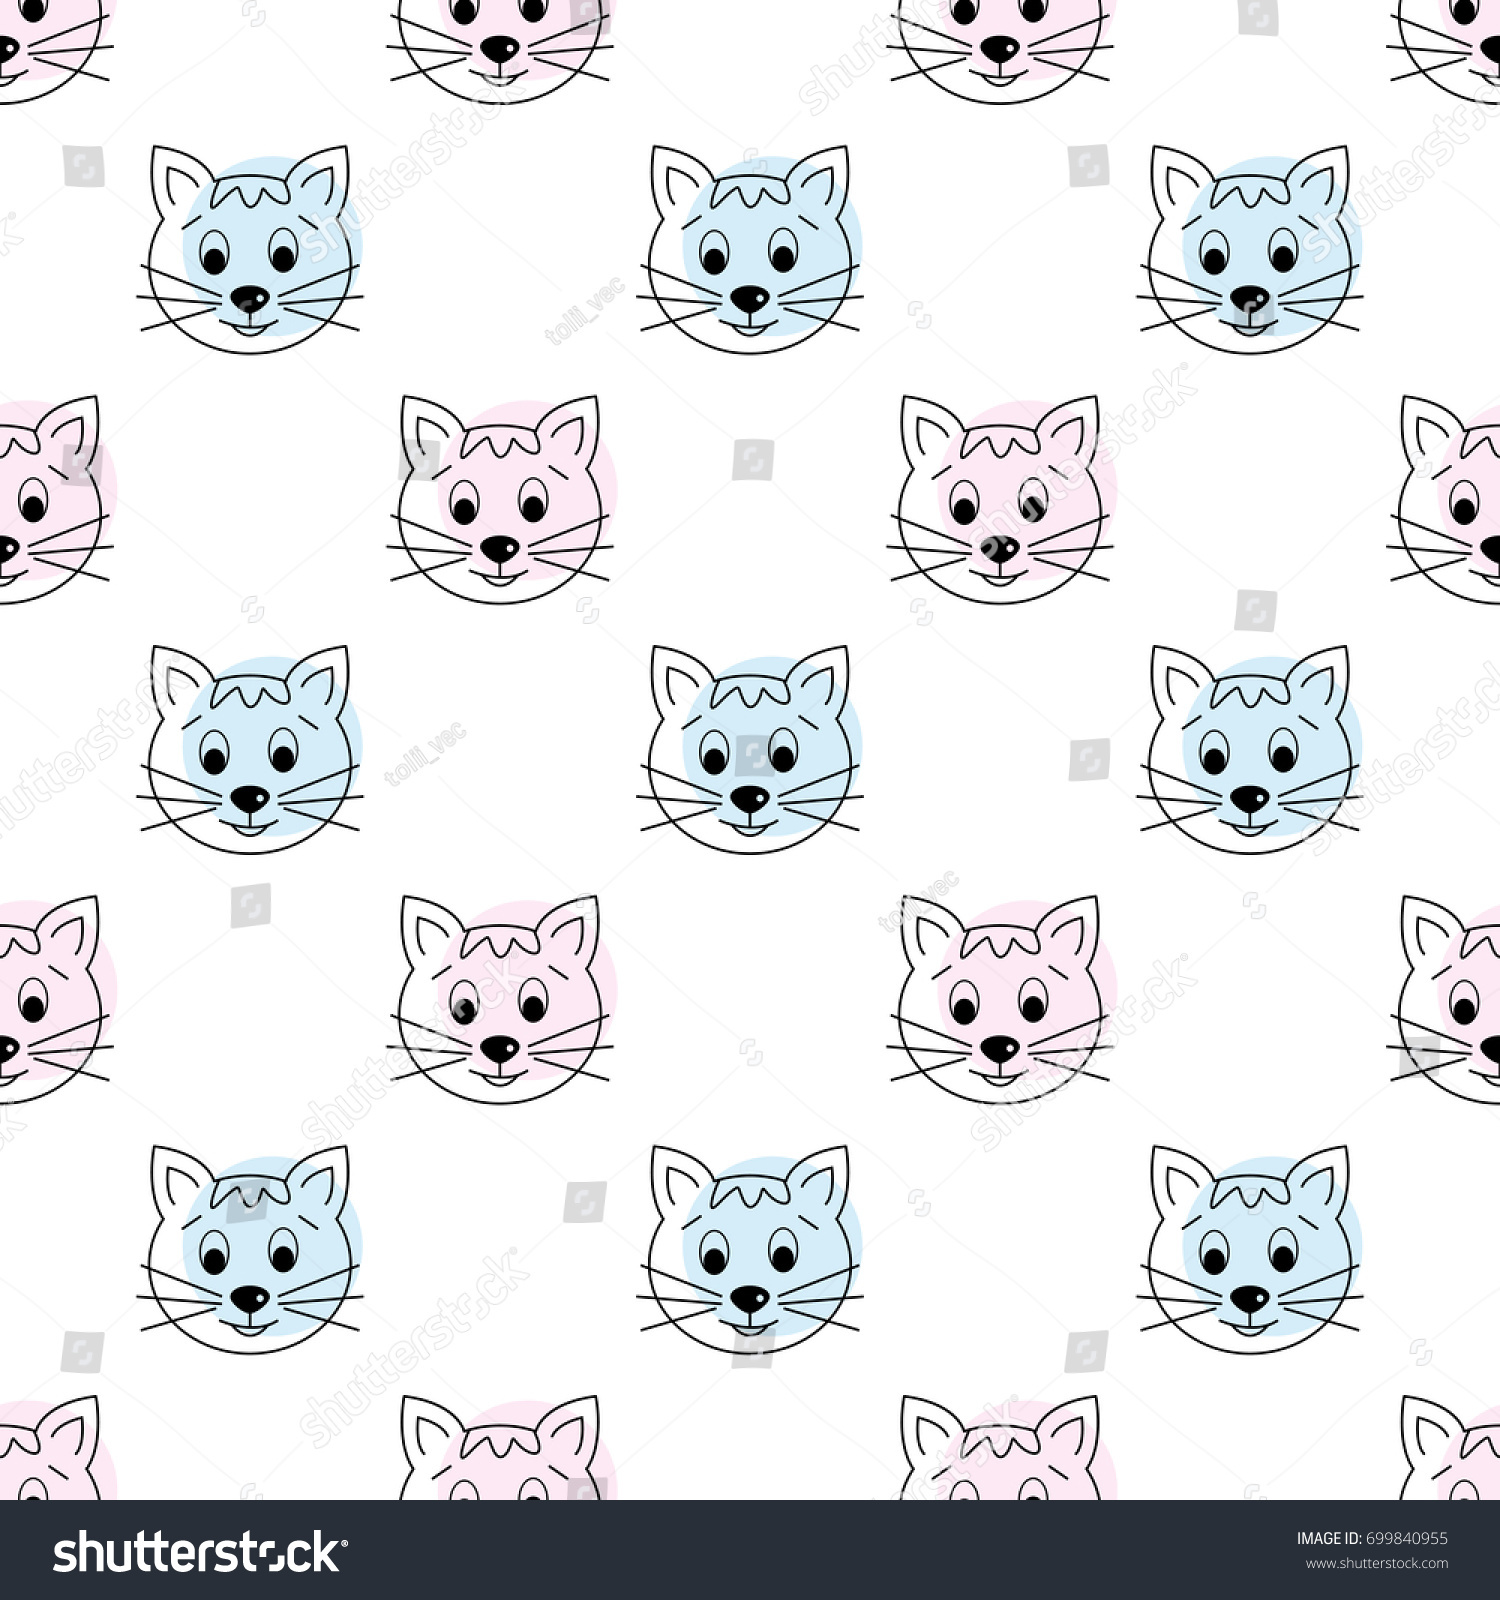 Seamless Pattern With Cats Cartoon Cats Background Good For